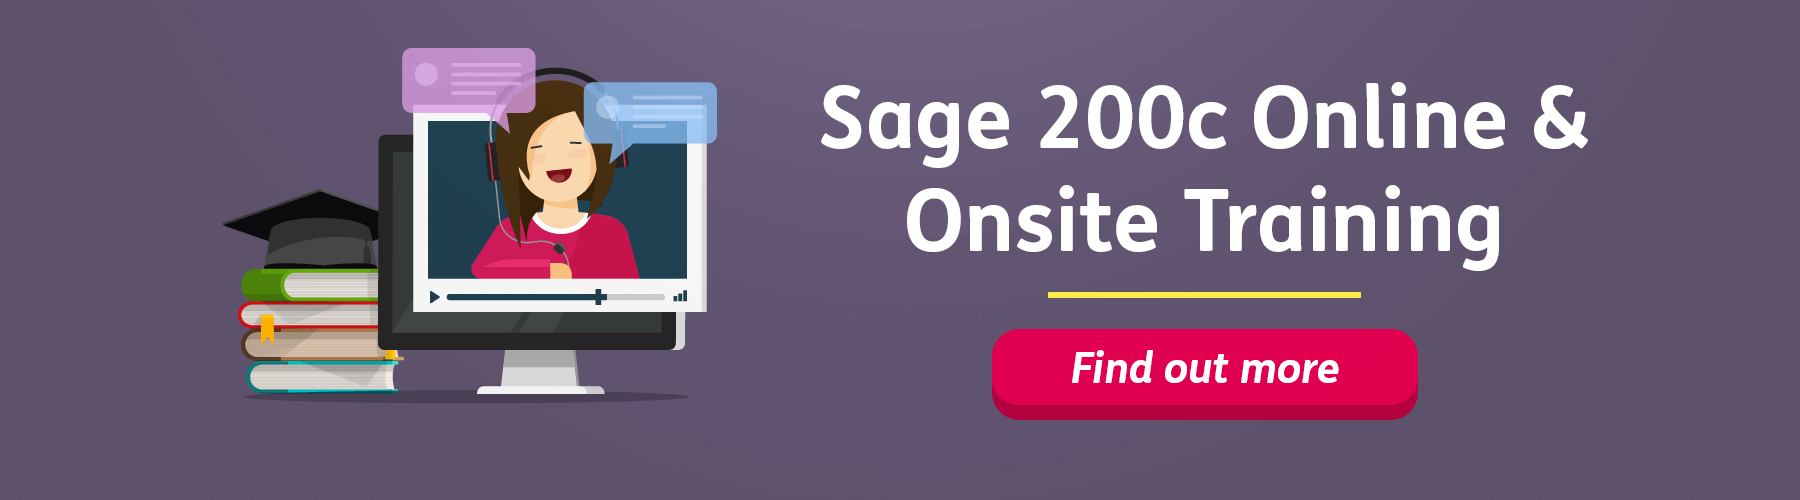 Sage 200 Online and Onsite Training